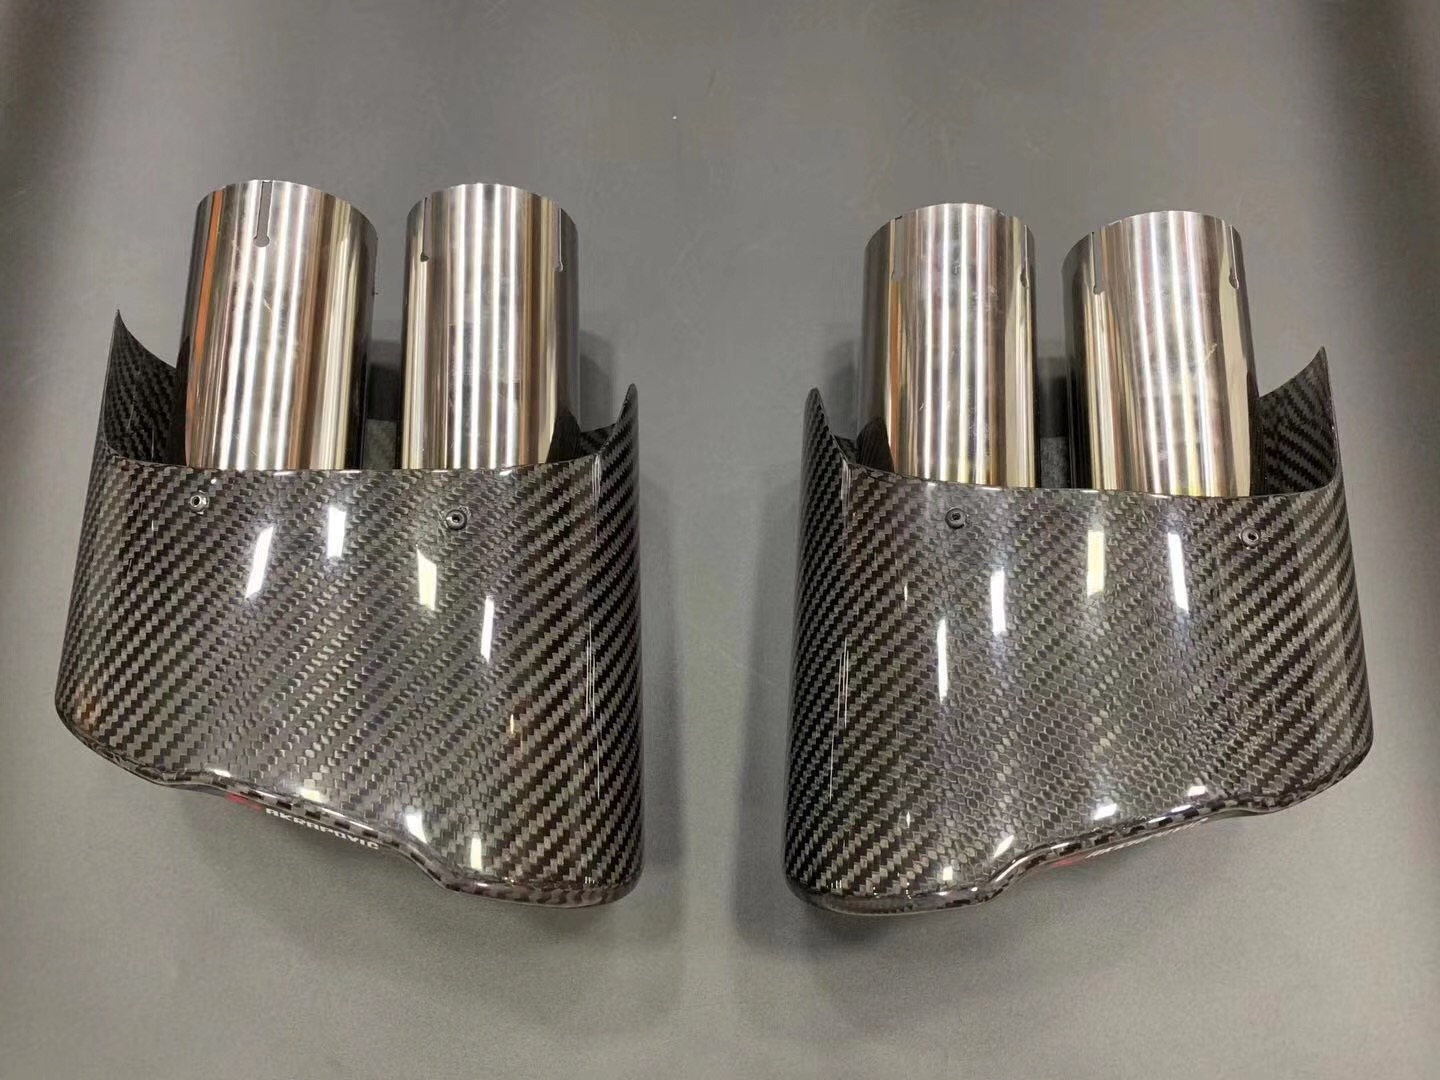 A Pair Real Carbon <font><b>Exhaust</b></font> Tips Tailpipe For <font><b>S3</b></font> S4 S5 6S S7 RS4 RS5 RS6 RS7 car modified Muffler Diffuser End Pipes image